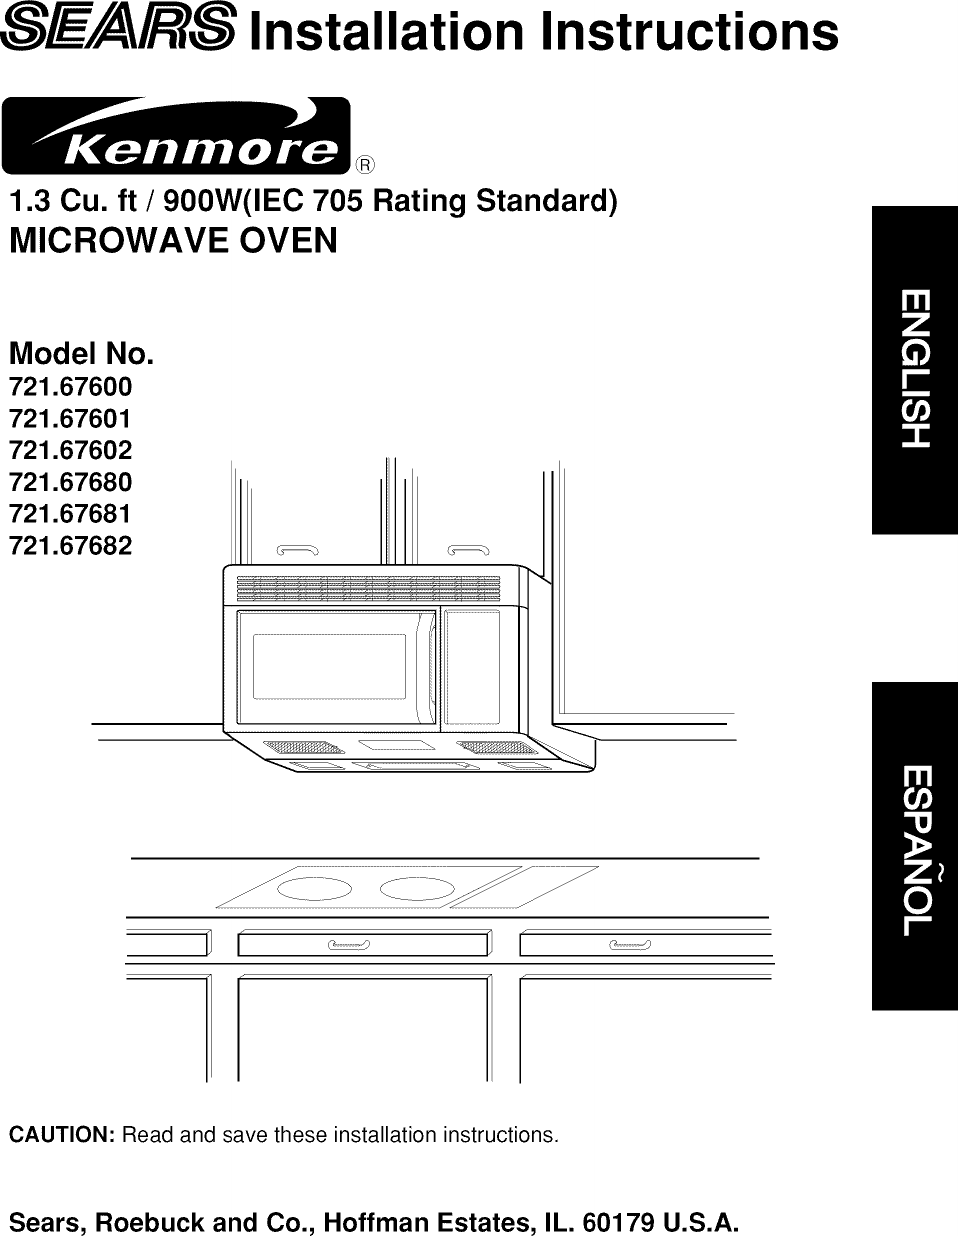 Kenmore 72167601790 User Manual MICROWAVE OVEN Manuals And